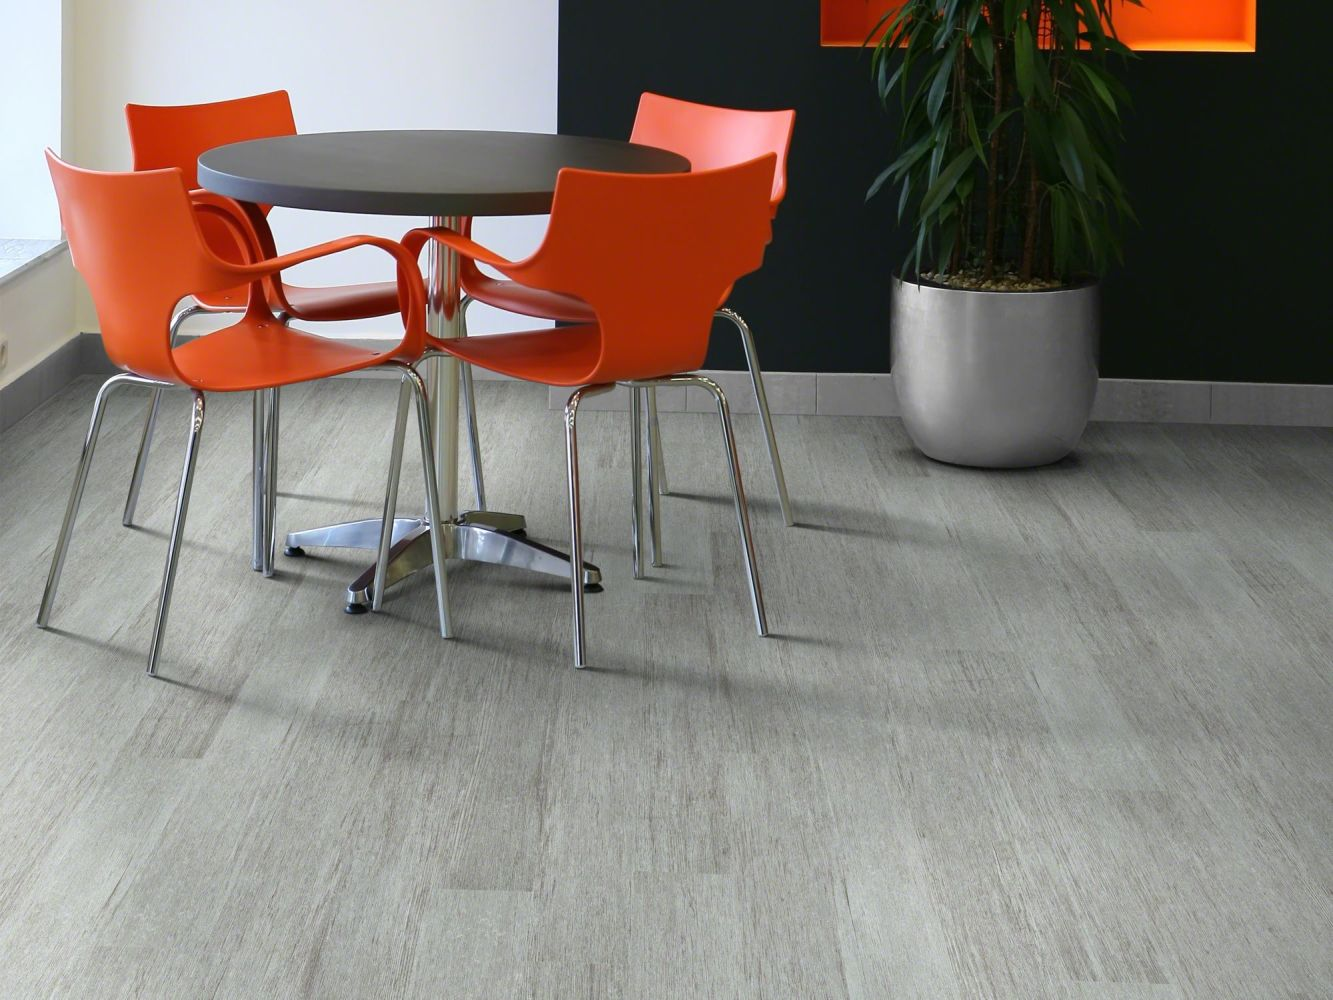 Shaw Floors Vinyl Residential All American Celebration 00559_0799V